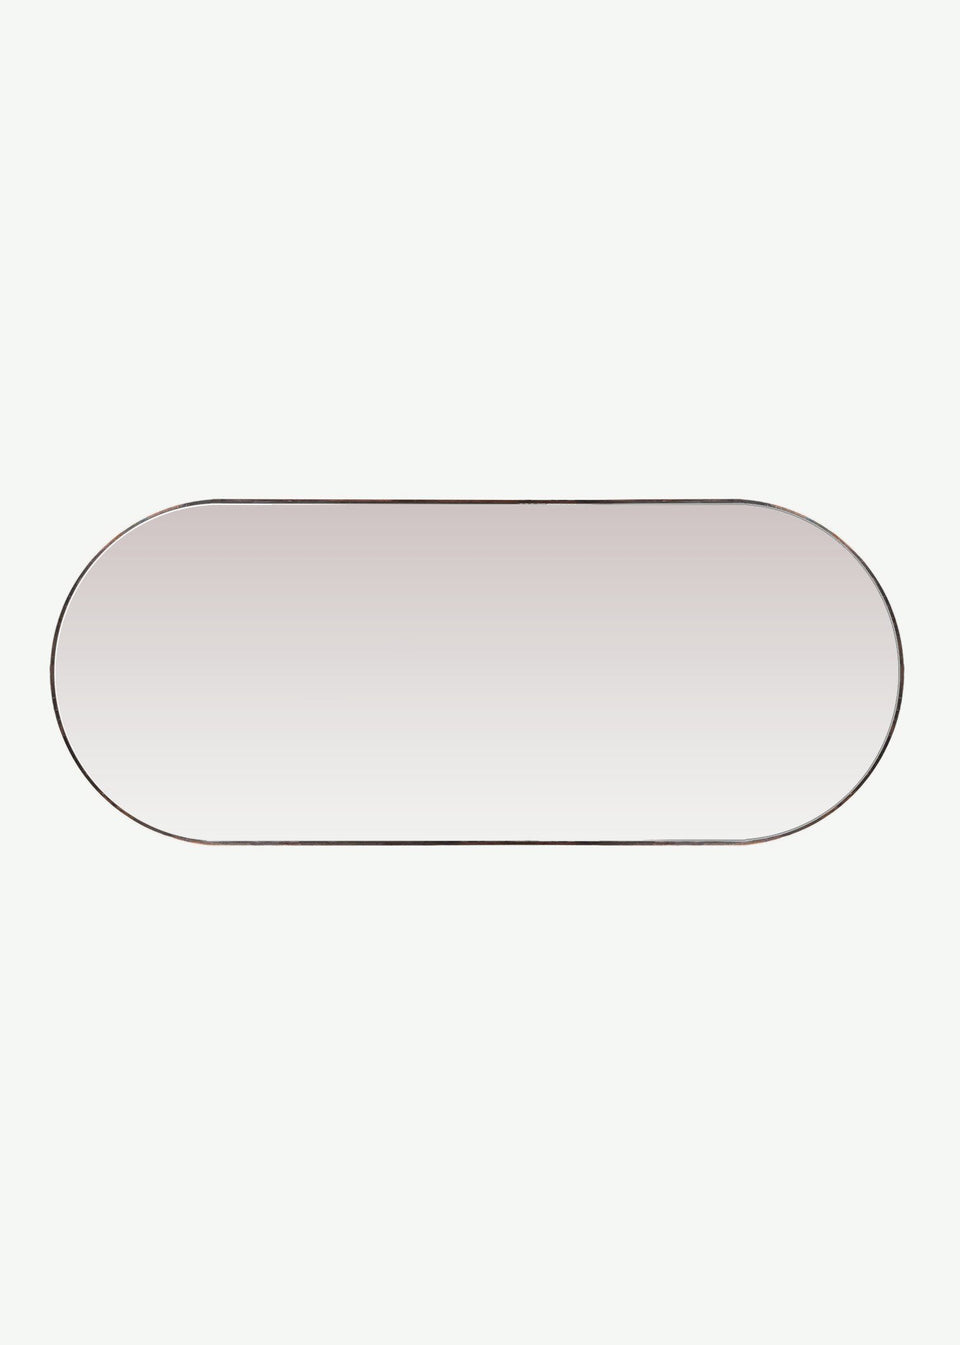 Classic Pill Mirrors - LED Backlit